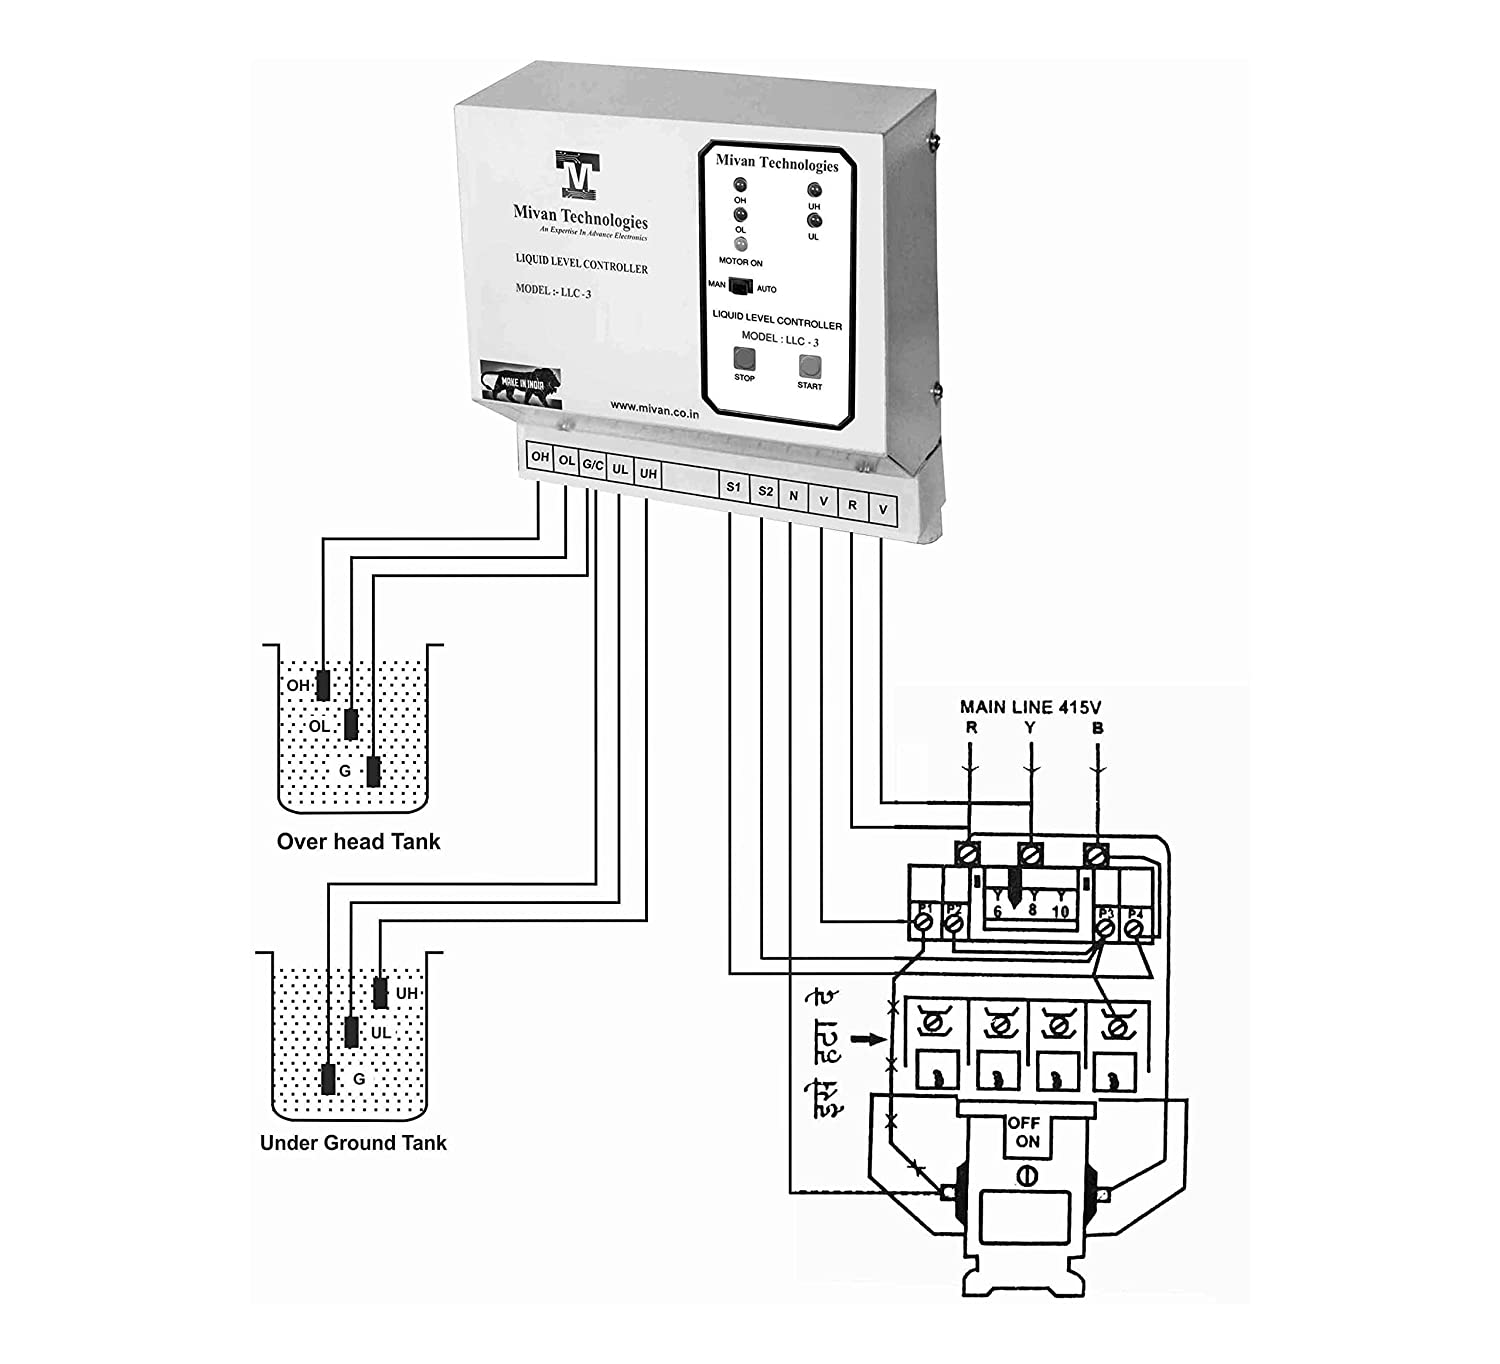 Buy Mivan Technologies 3 Phase Fully Automatic Water Level Wiring Diagram For Liquid Switches Controller And Indicators Motor Submersible Pump With 6 Sensors Online